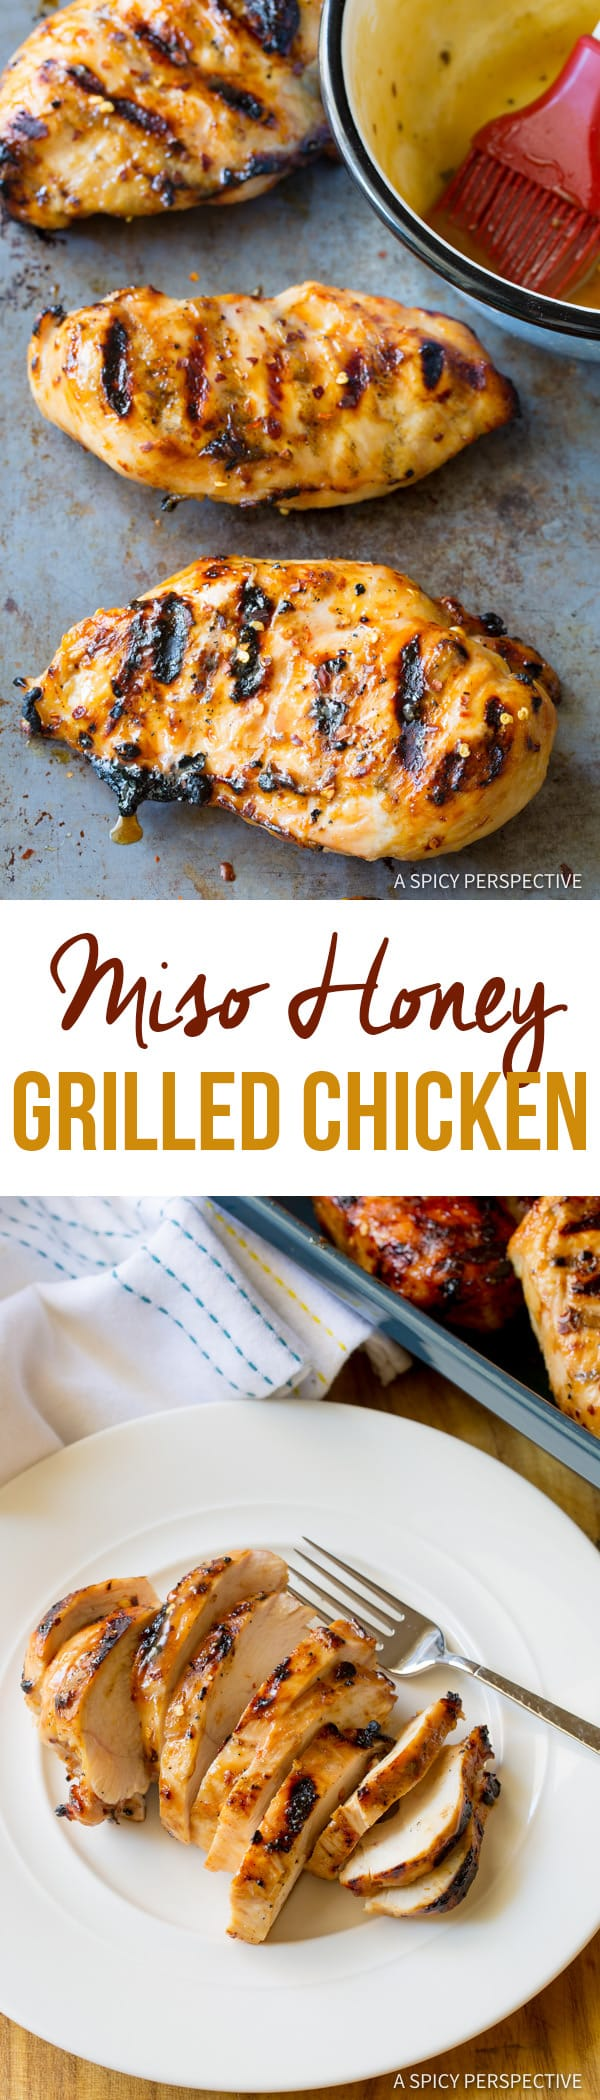 Miso Honey Chicken - A Spicy Perspective